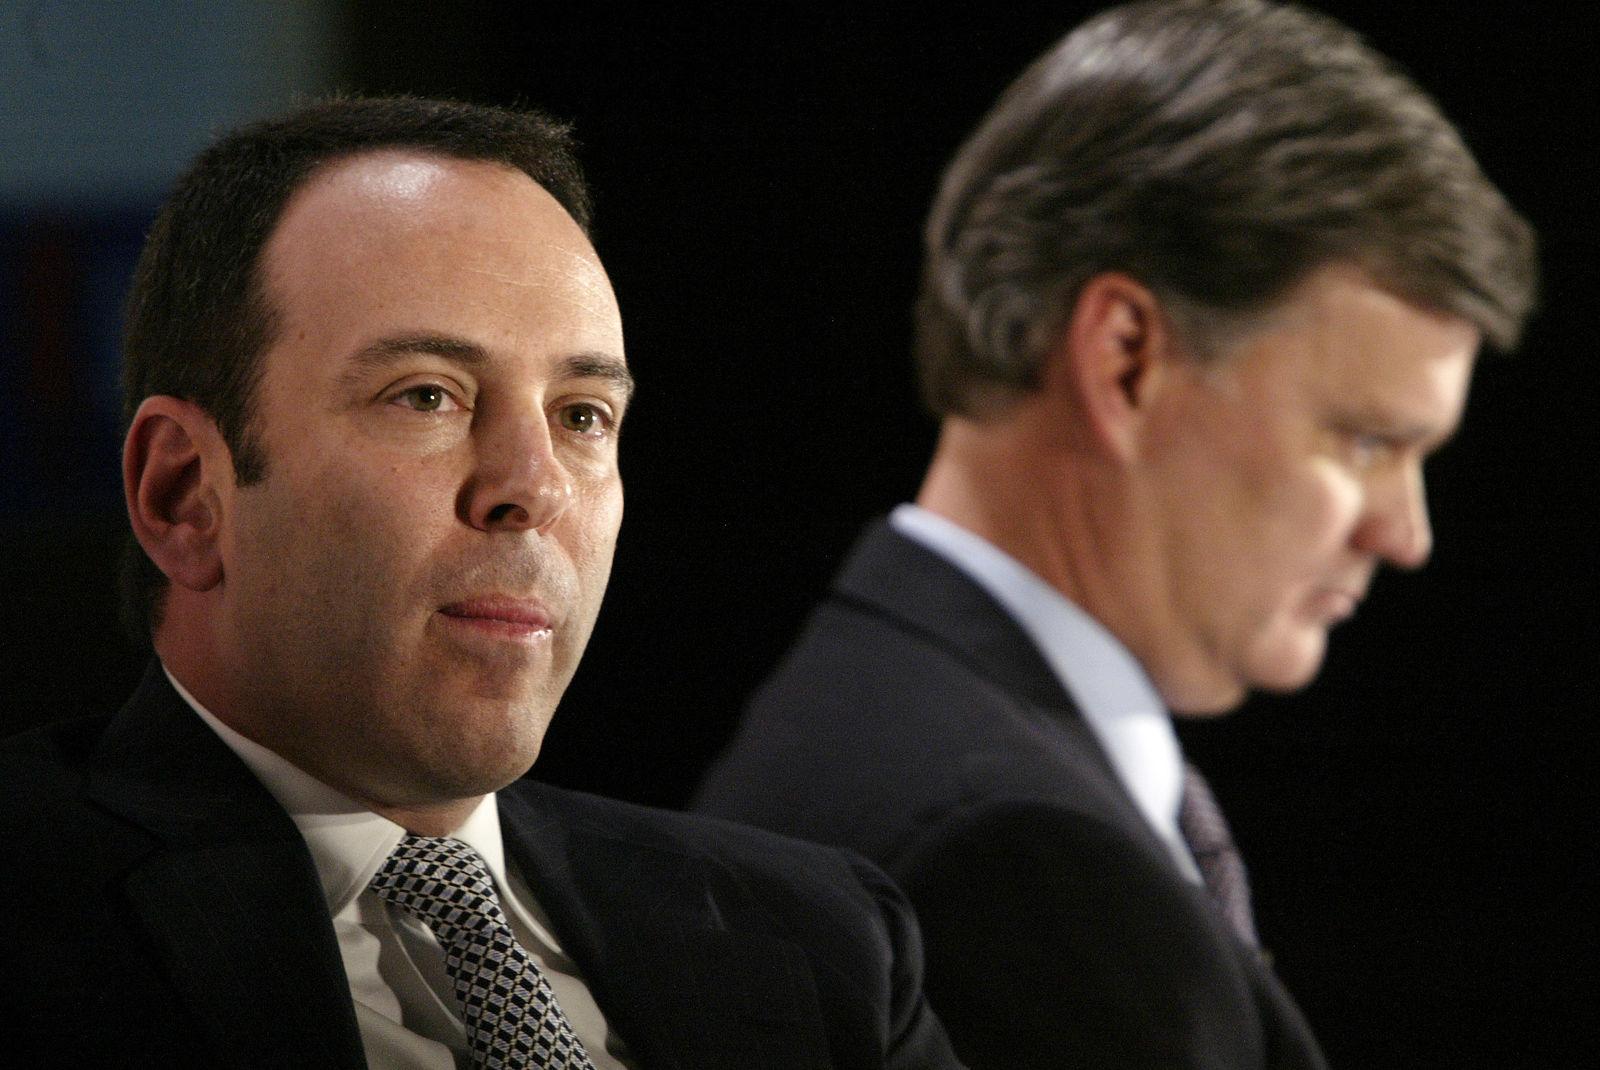 FILE- In this Nov. 17, 2004, file photo Kmart chairman Edward Lampert, left, and Sears CEO Alan Lacy listen during a news conference to announce the merger of Kmart and Sears in New York. (AP Photo/Gregory Bull, File)